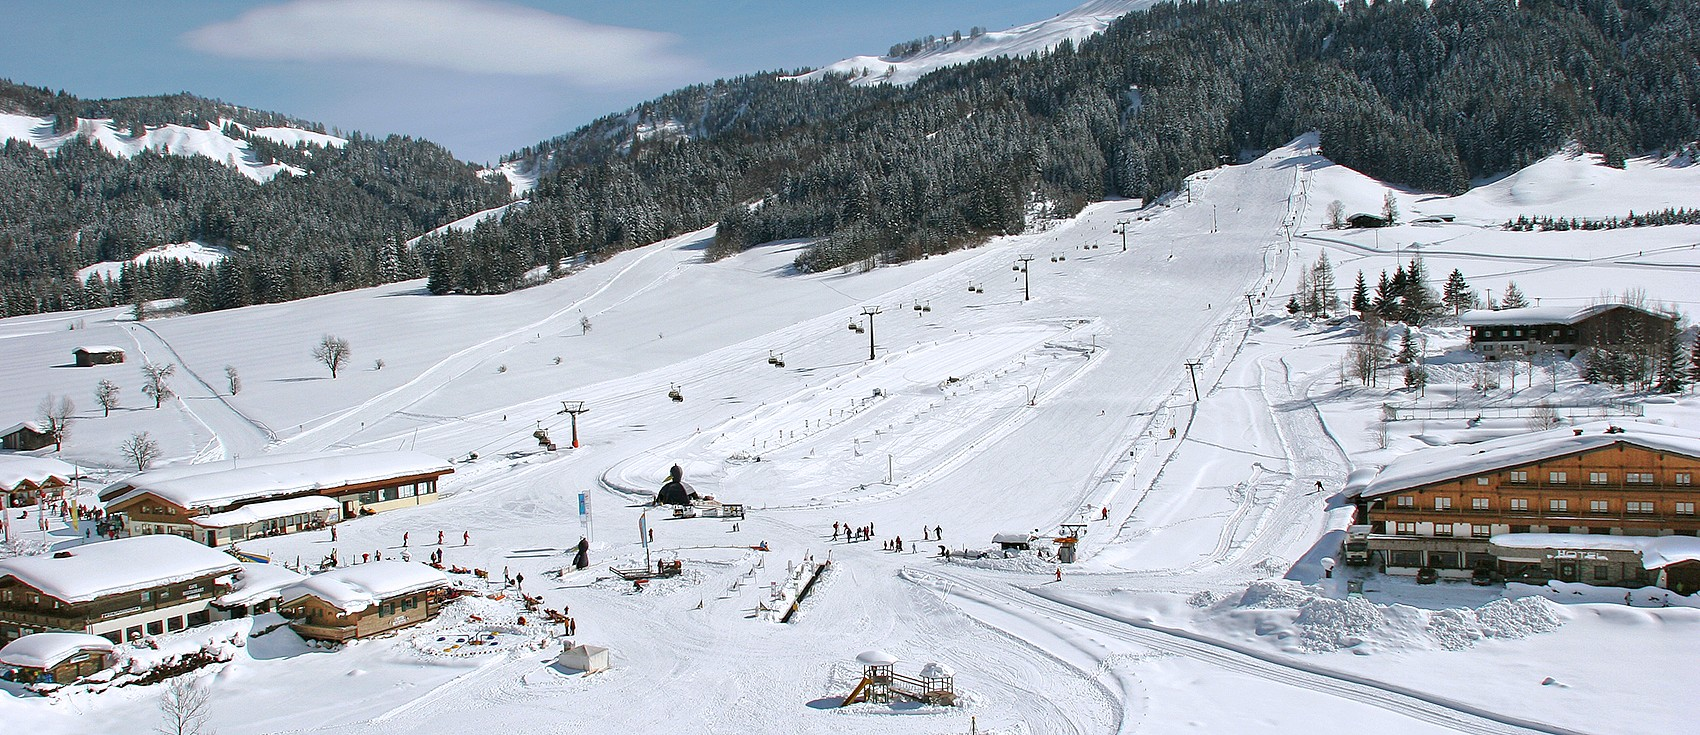 Skiing area Pillerseetal